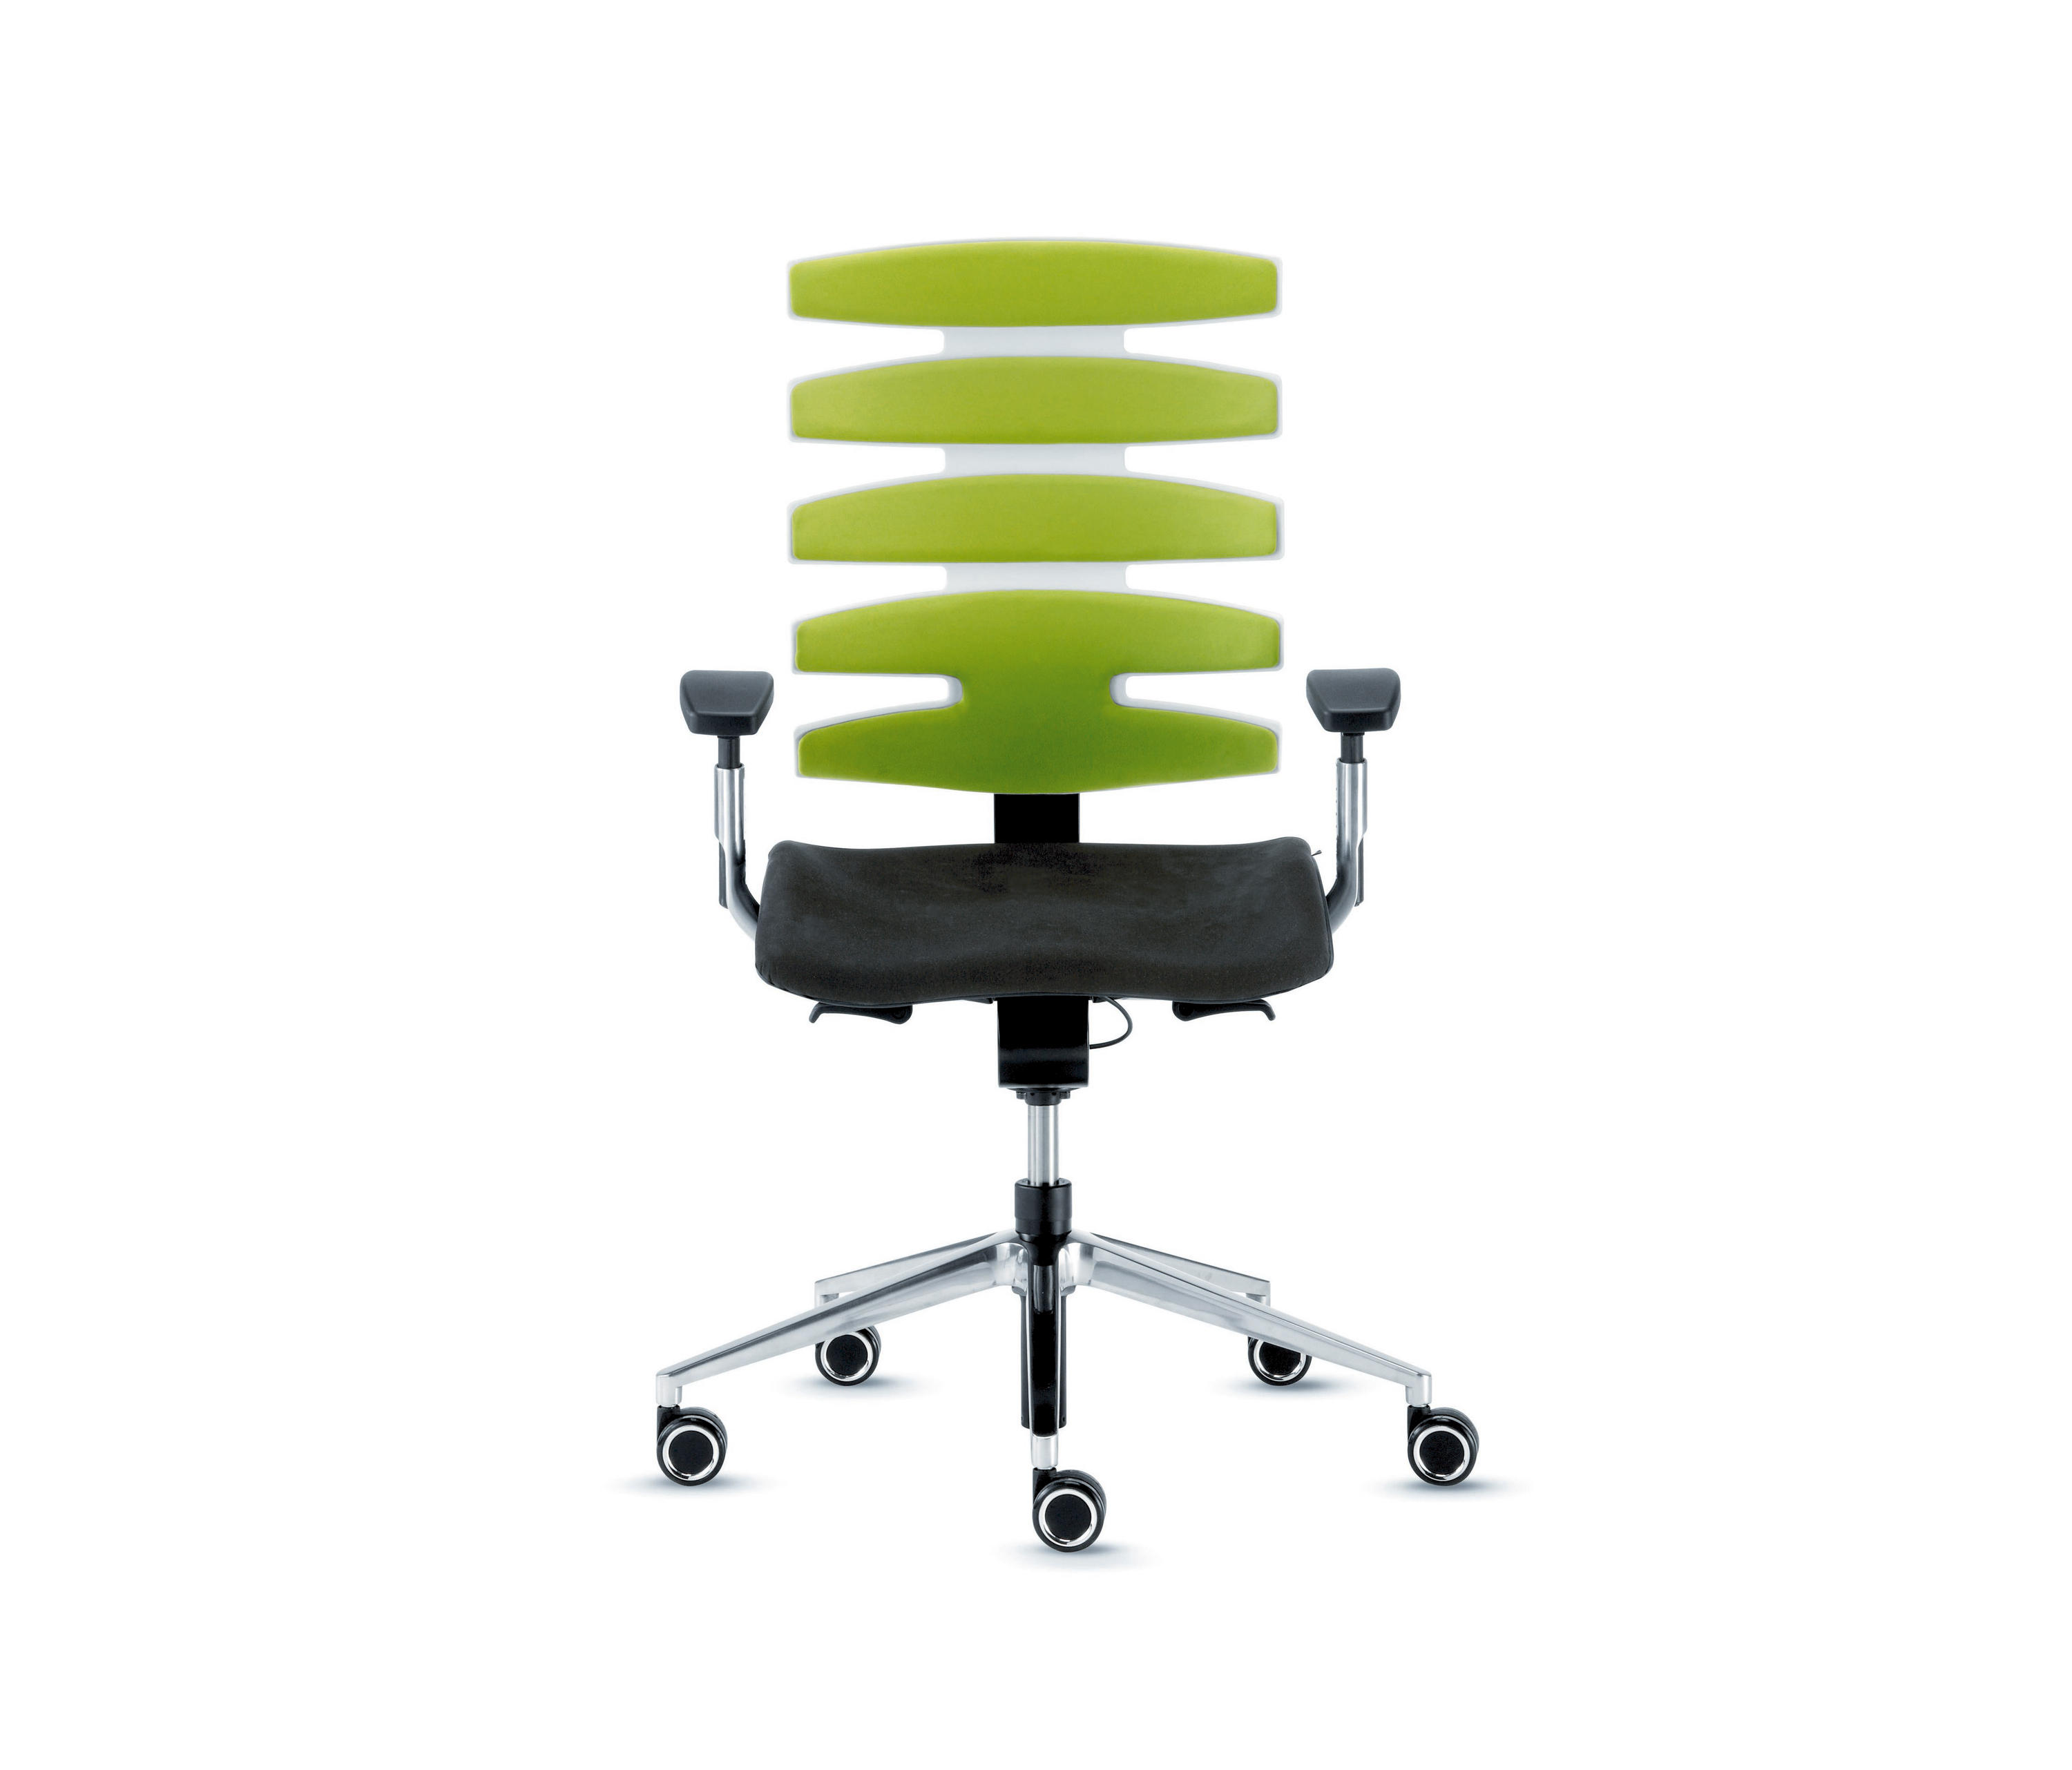 SITAGWAVE SWIVEL CHAIR - Task chairs from Sitag | Architonic